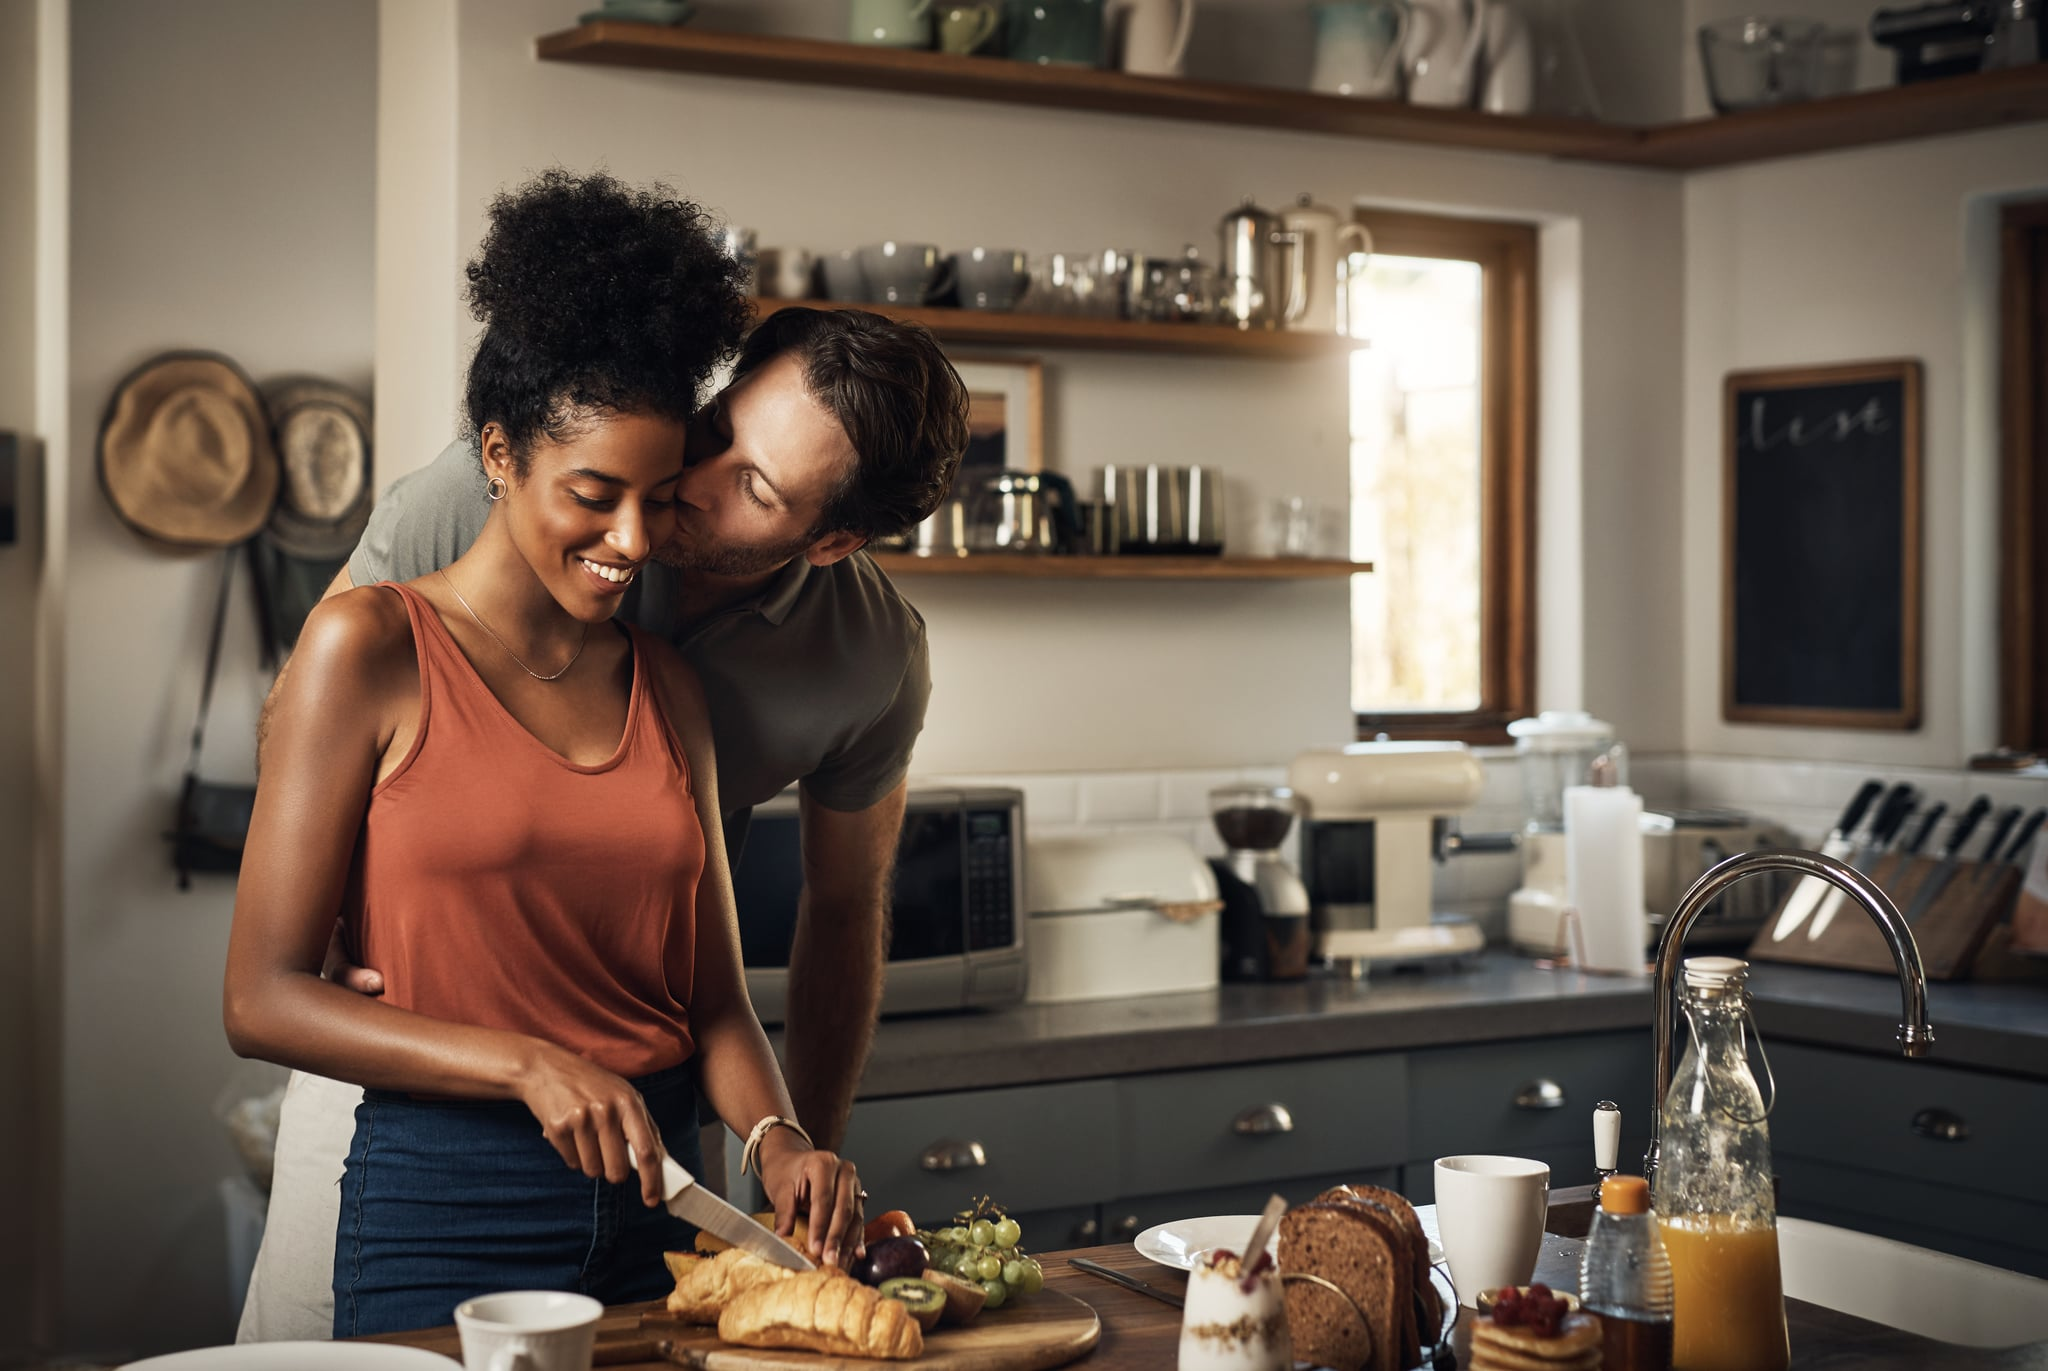 Cropped shot of an affectionate middle aged man kissing his wife on the cheek while she prepares breakfast in their kitchen at home